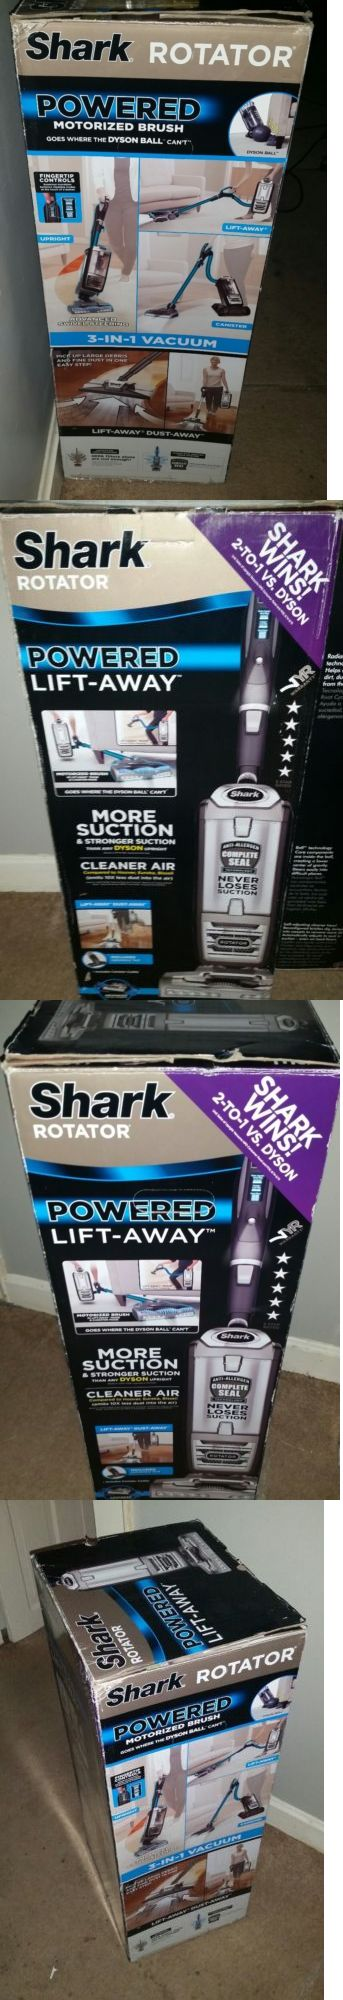 Vacuum Cleaners 20614: Shark Rotator Powered Lift-Away Bagless Vacuum Nv752 7 Year Warranty, New In Box -> BUY IT NOW ONLY: $250 on eBay!